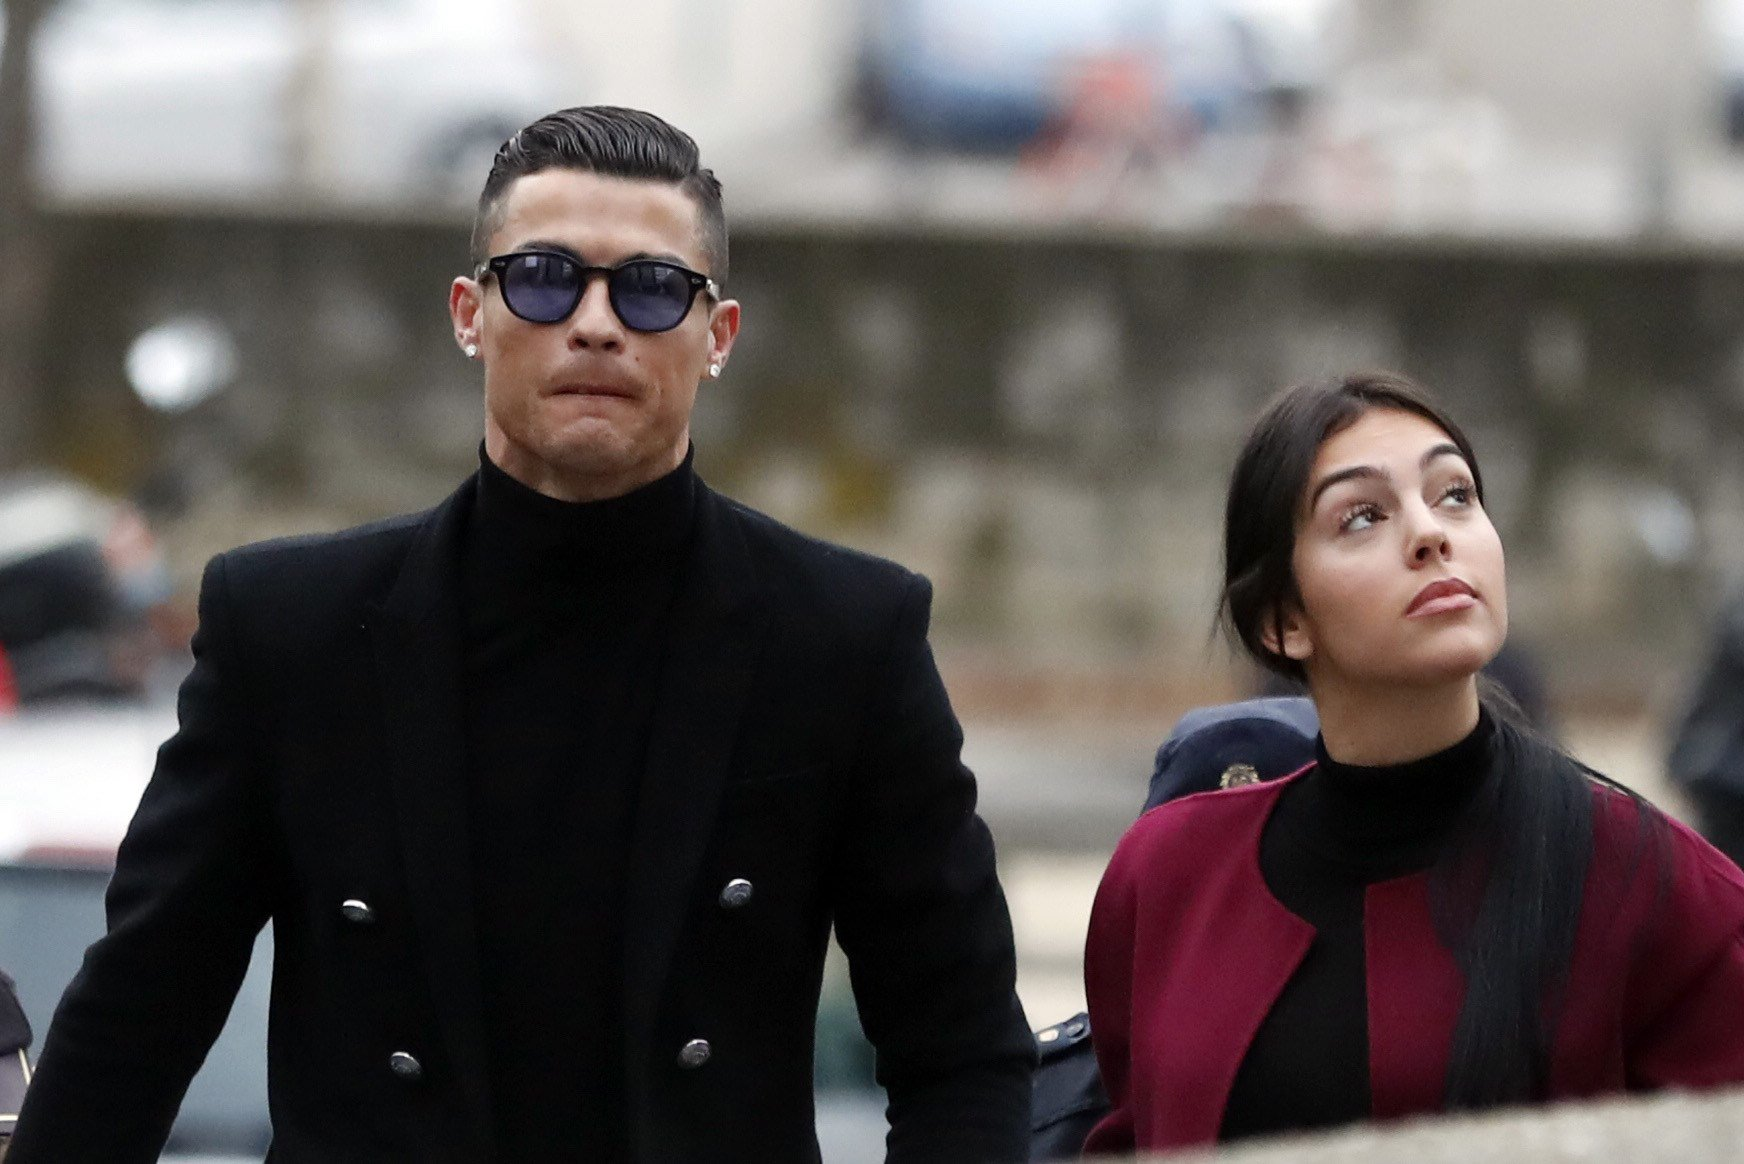 Cristiano Ronaldo accepts 23-month suspended sentence and £16.5m fine for tax fraud